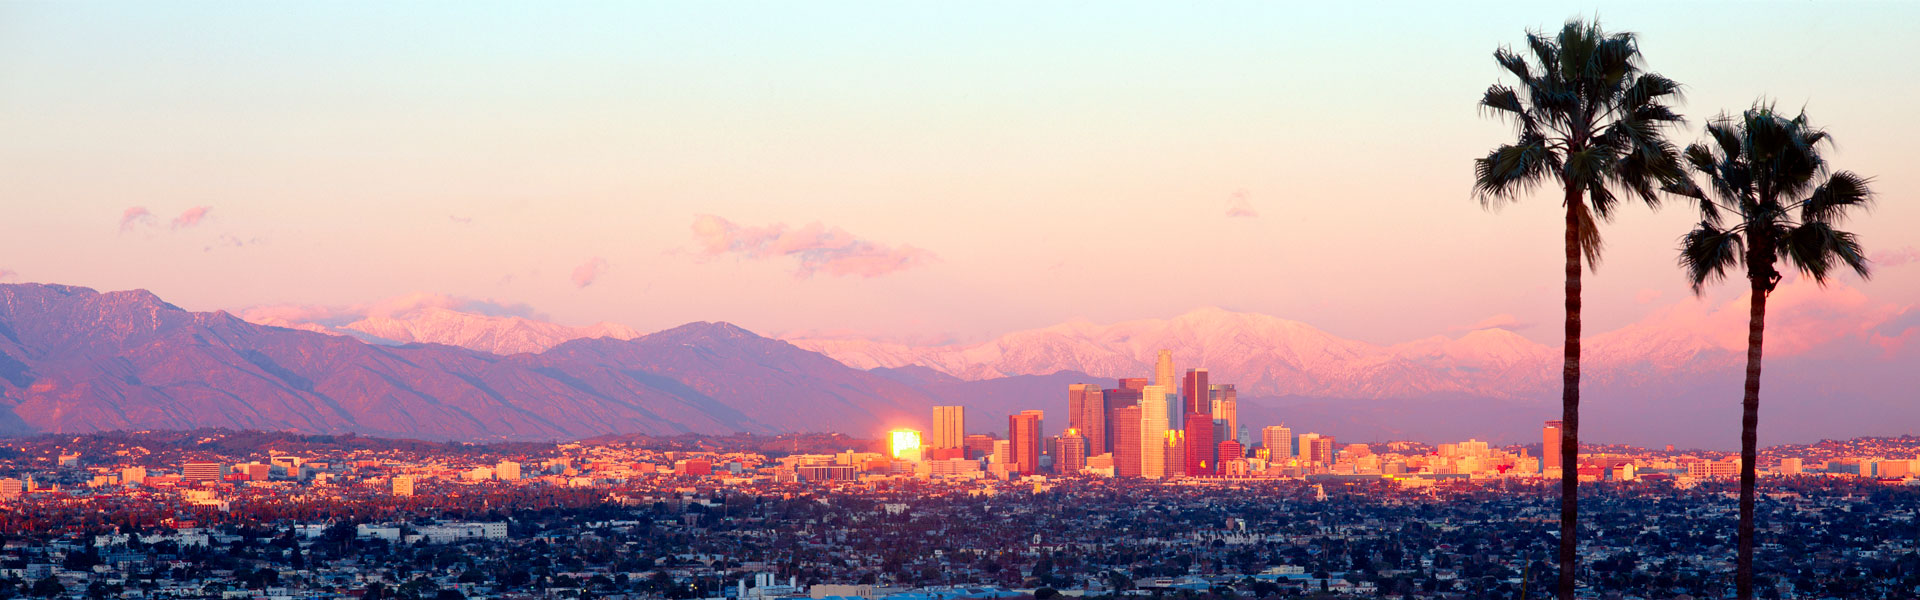 View of Downtown Los Angeles with palm trees